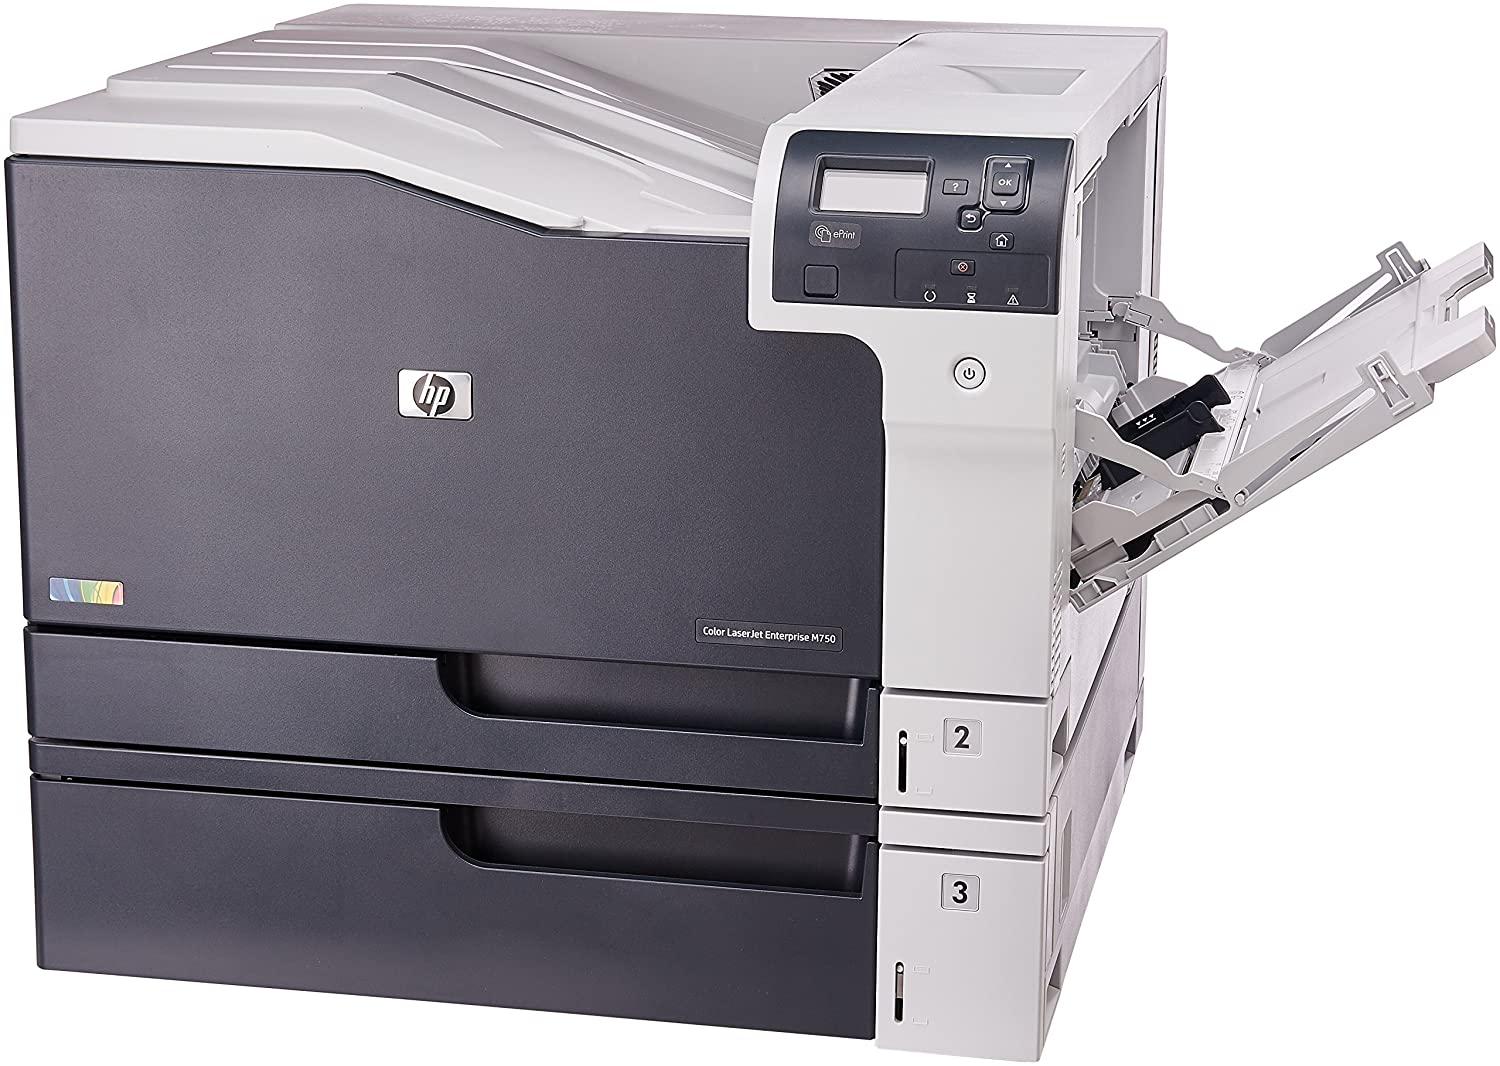 Hp m750 color printing cost per page - Amazon Com Hp Color Laserjet Enterprise M750n Laser Printer Electronics